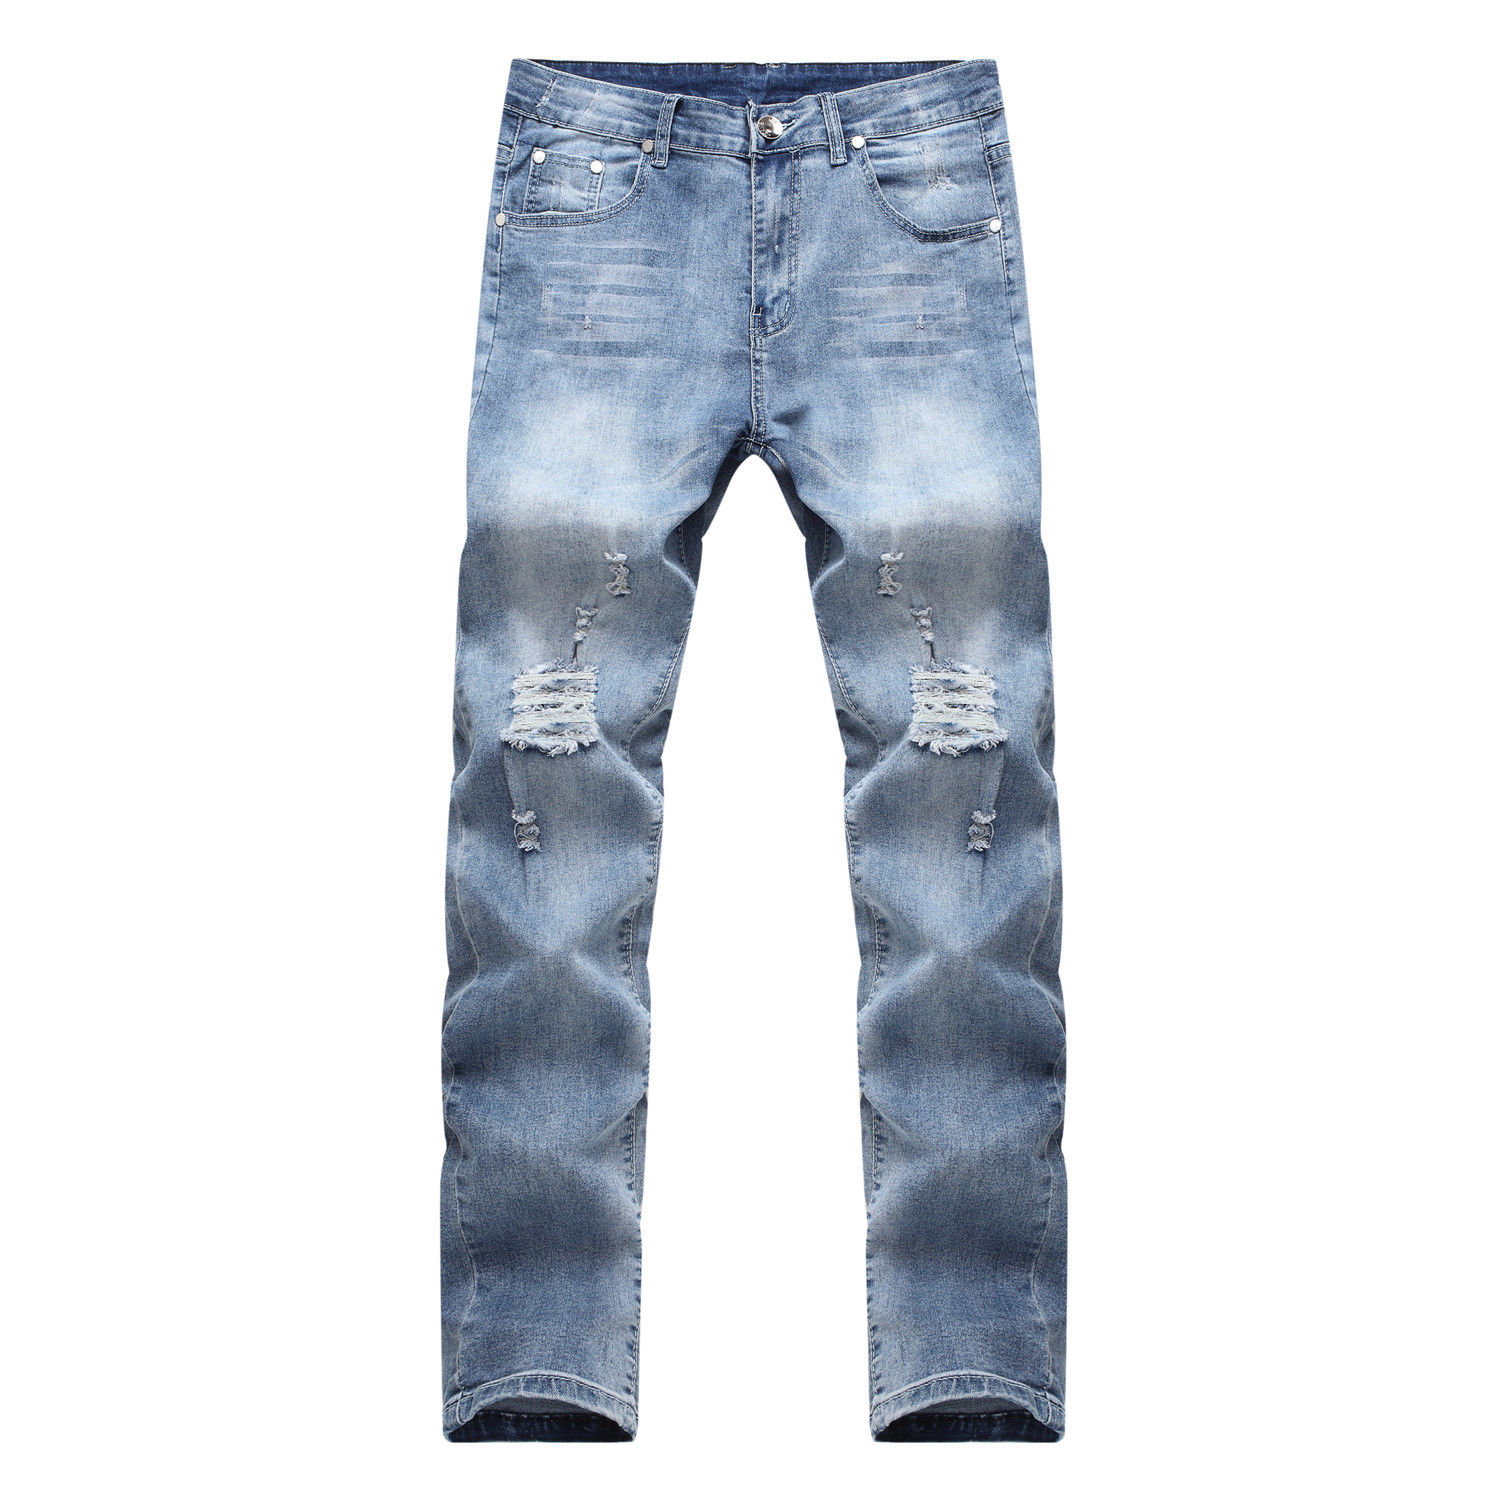 New Fashion Mens Designed Straight Slim Fit Denim Trousers Casual Skinny Pants Stylish Mens Pencil Pants Long Skinny Hole Jeans fashion europe style printed jeans men denim jeans slim black painted pencil pants long trousers tight fit casual pattern pants